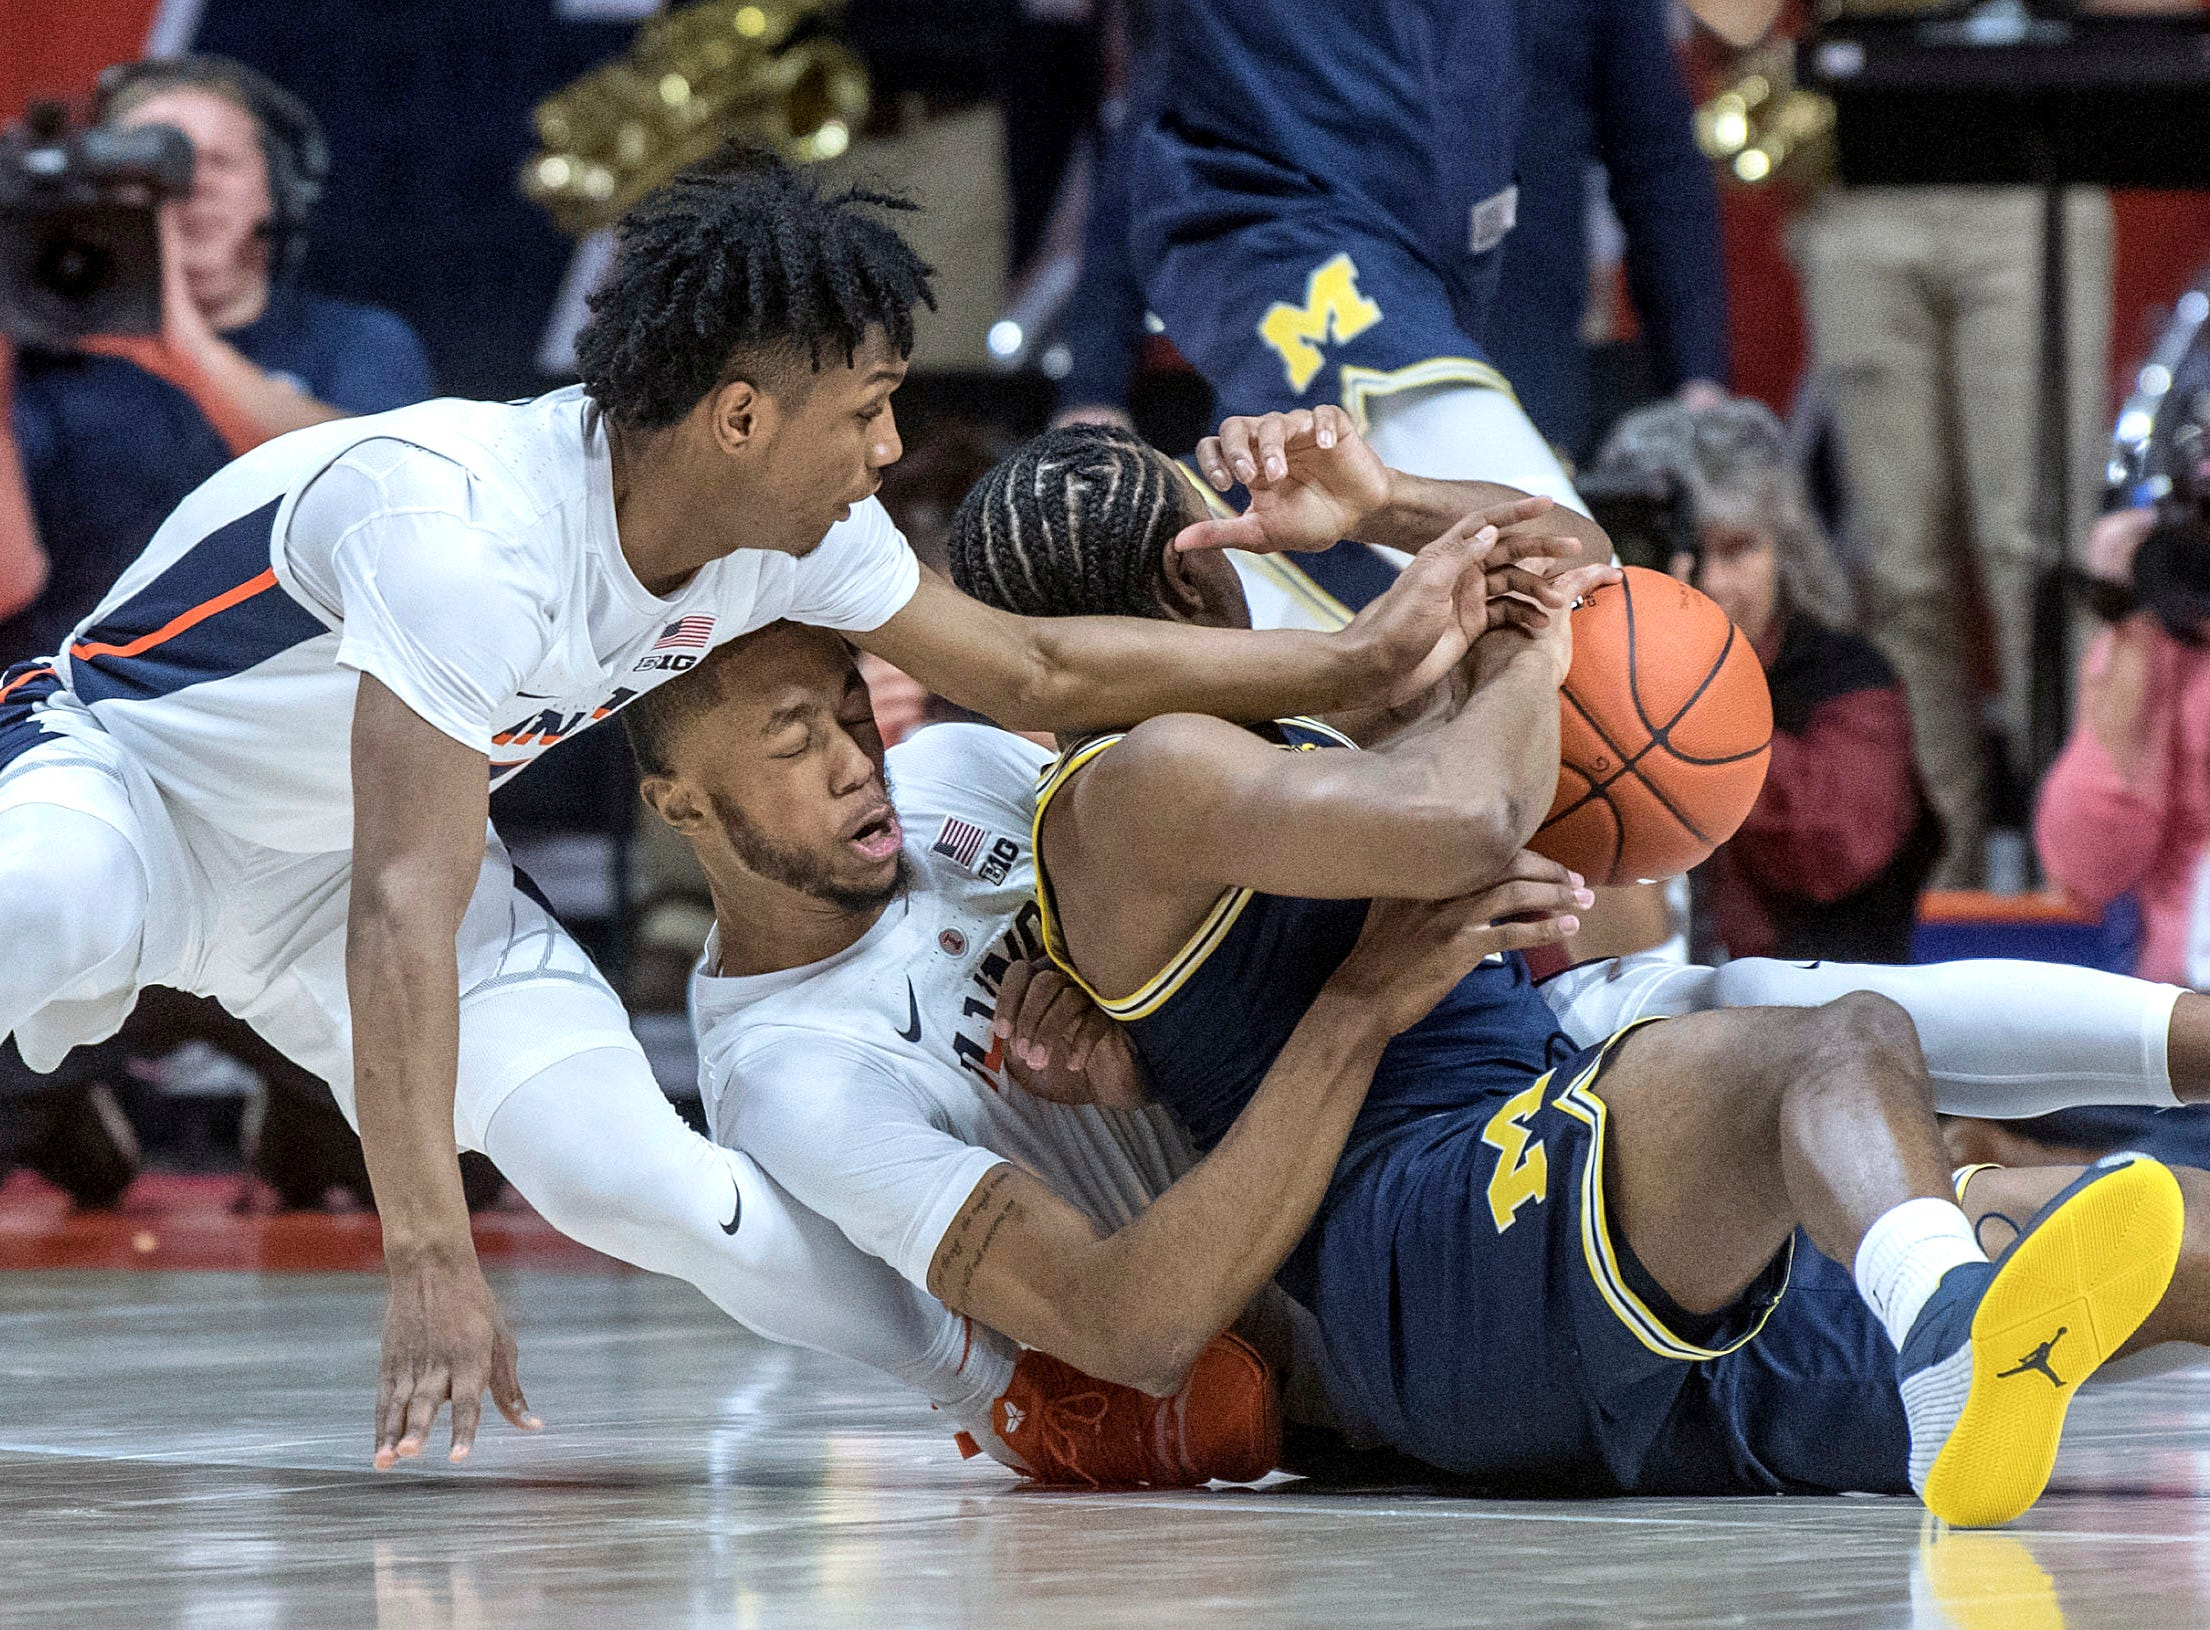 Illinois guards Trent Frazier and Alan Griffin battle for the ball with Michigan guard Zavier Simpson, right, during the first half.